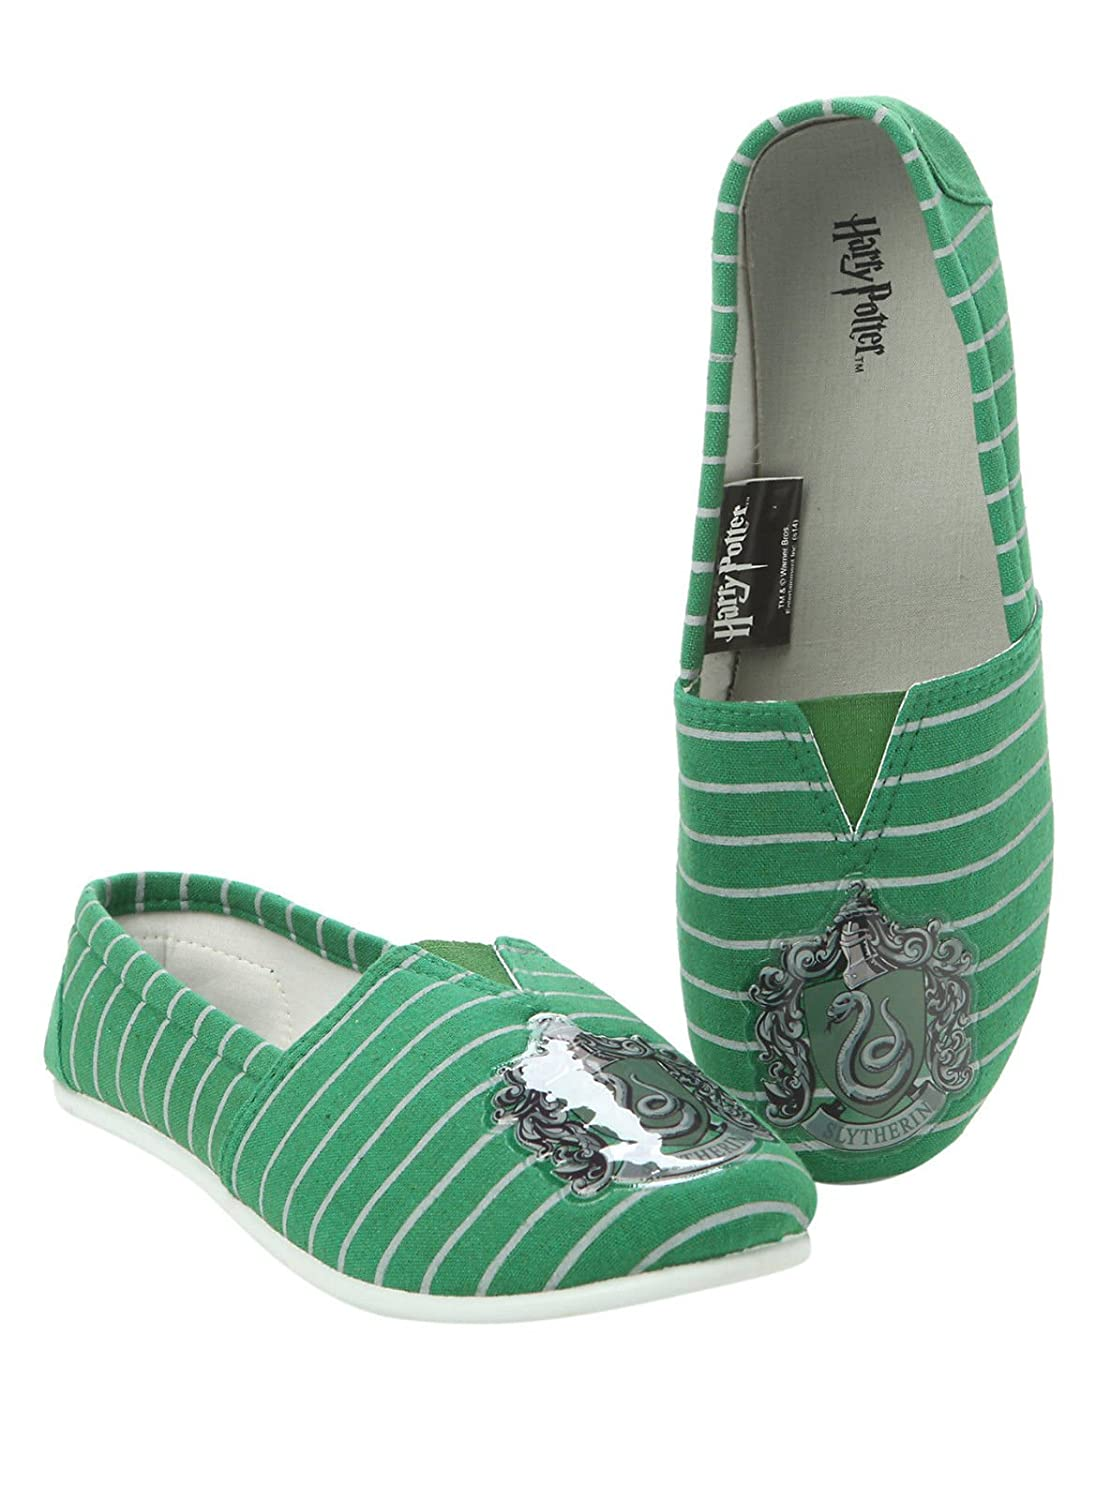 Harry Potter SLYTHERIN Logo All Over Print Slip On Canvas Shoes